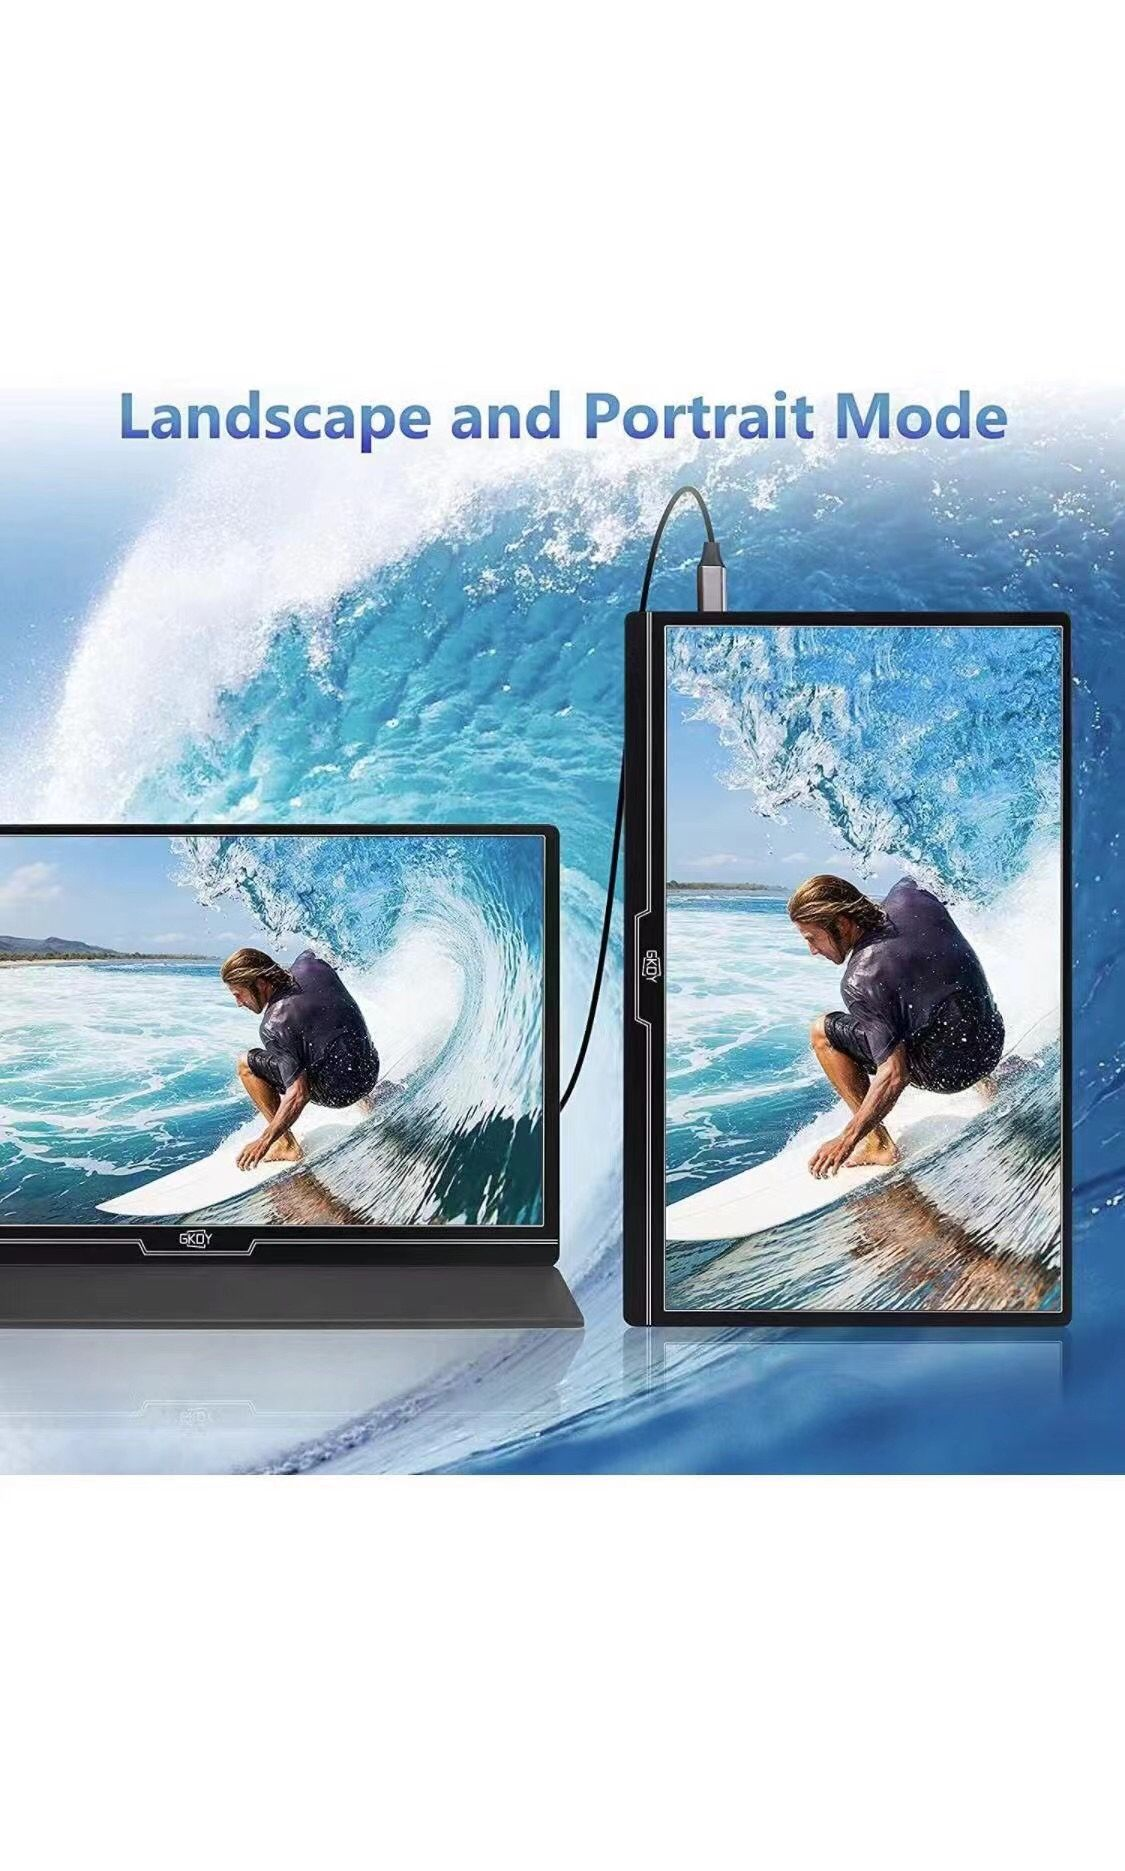 Portable Monitor 15.6 Inch 100% SRGB 1080P Gaming Monitor FHD Portable Laptop Monitor 1920 x 1080 IPS 178° Screen Eye Care Display with HDMI USB Type-